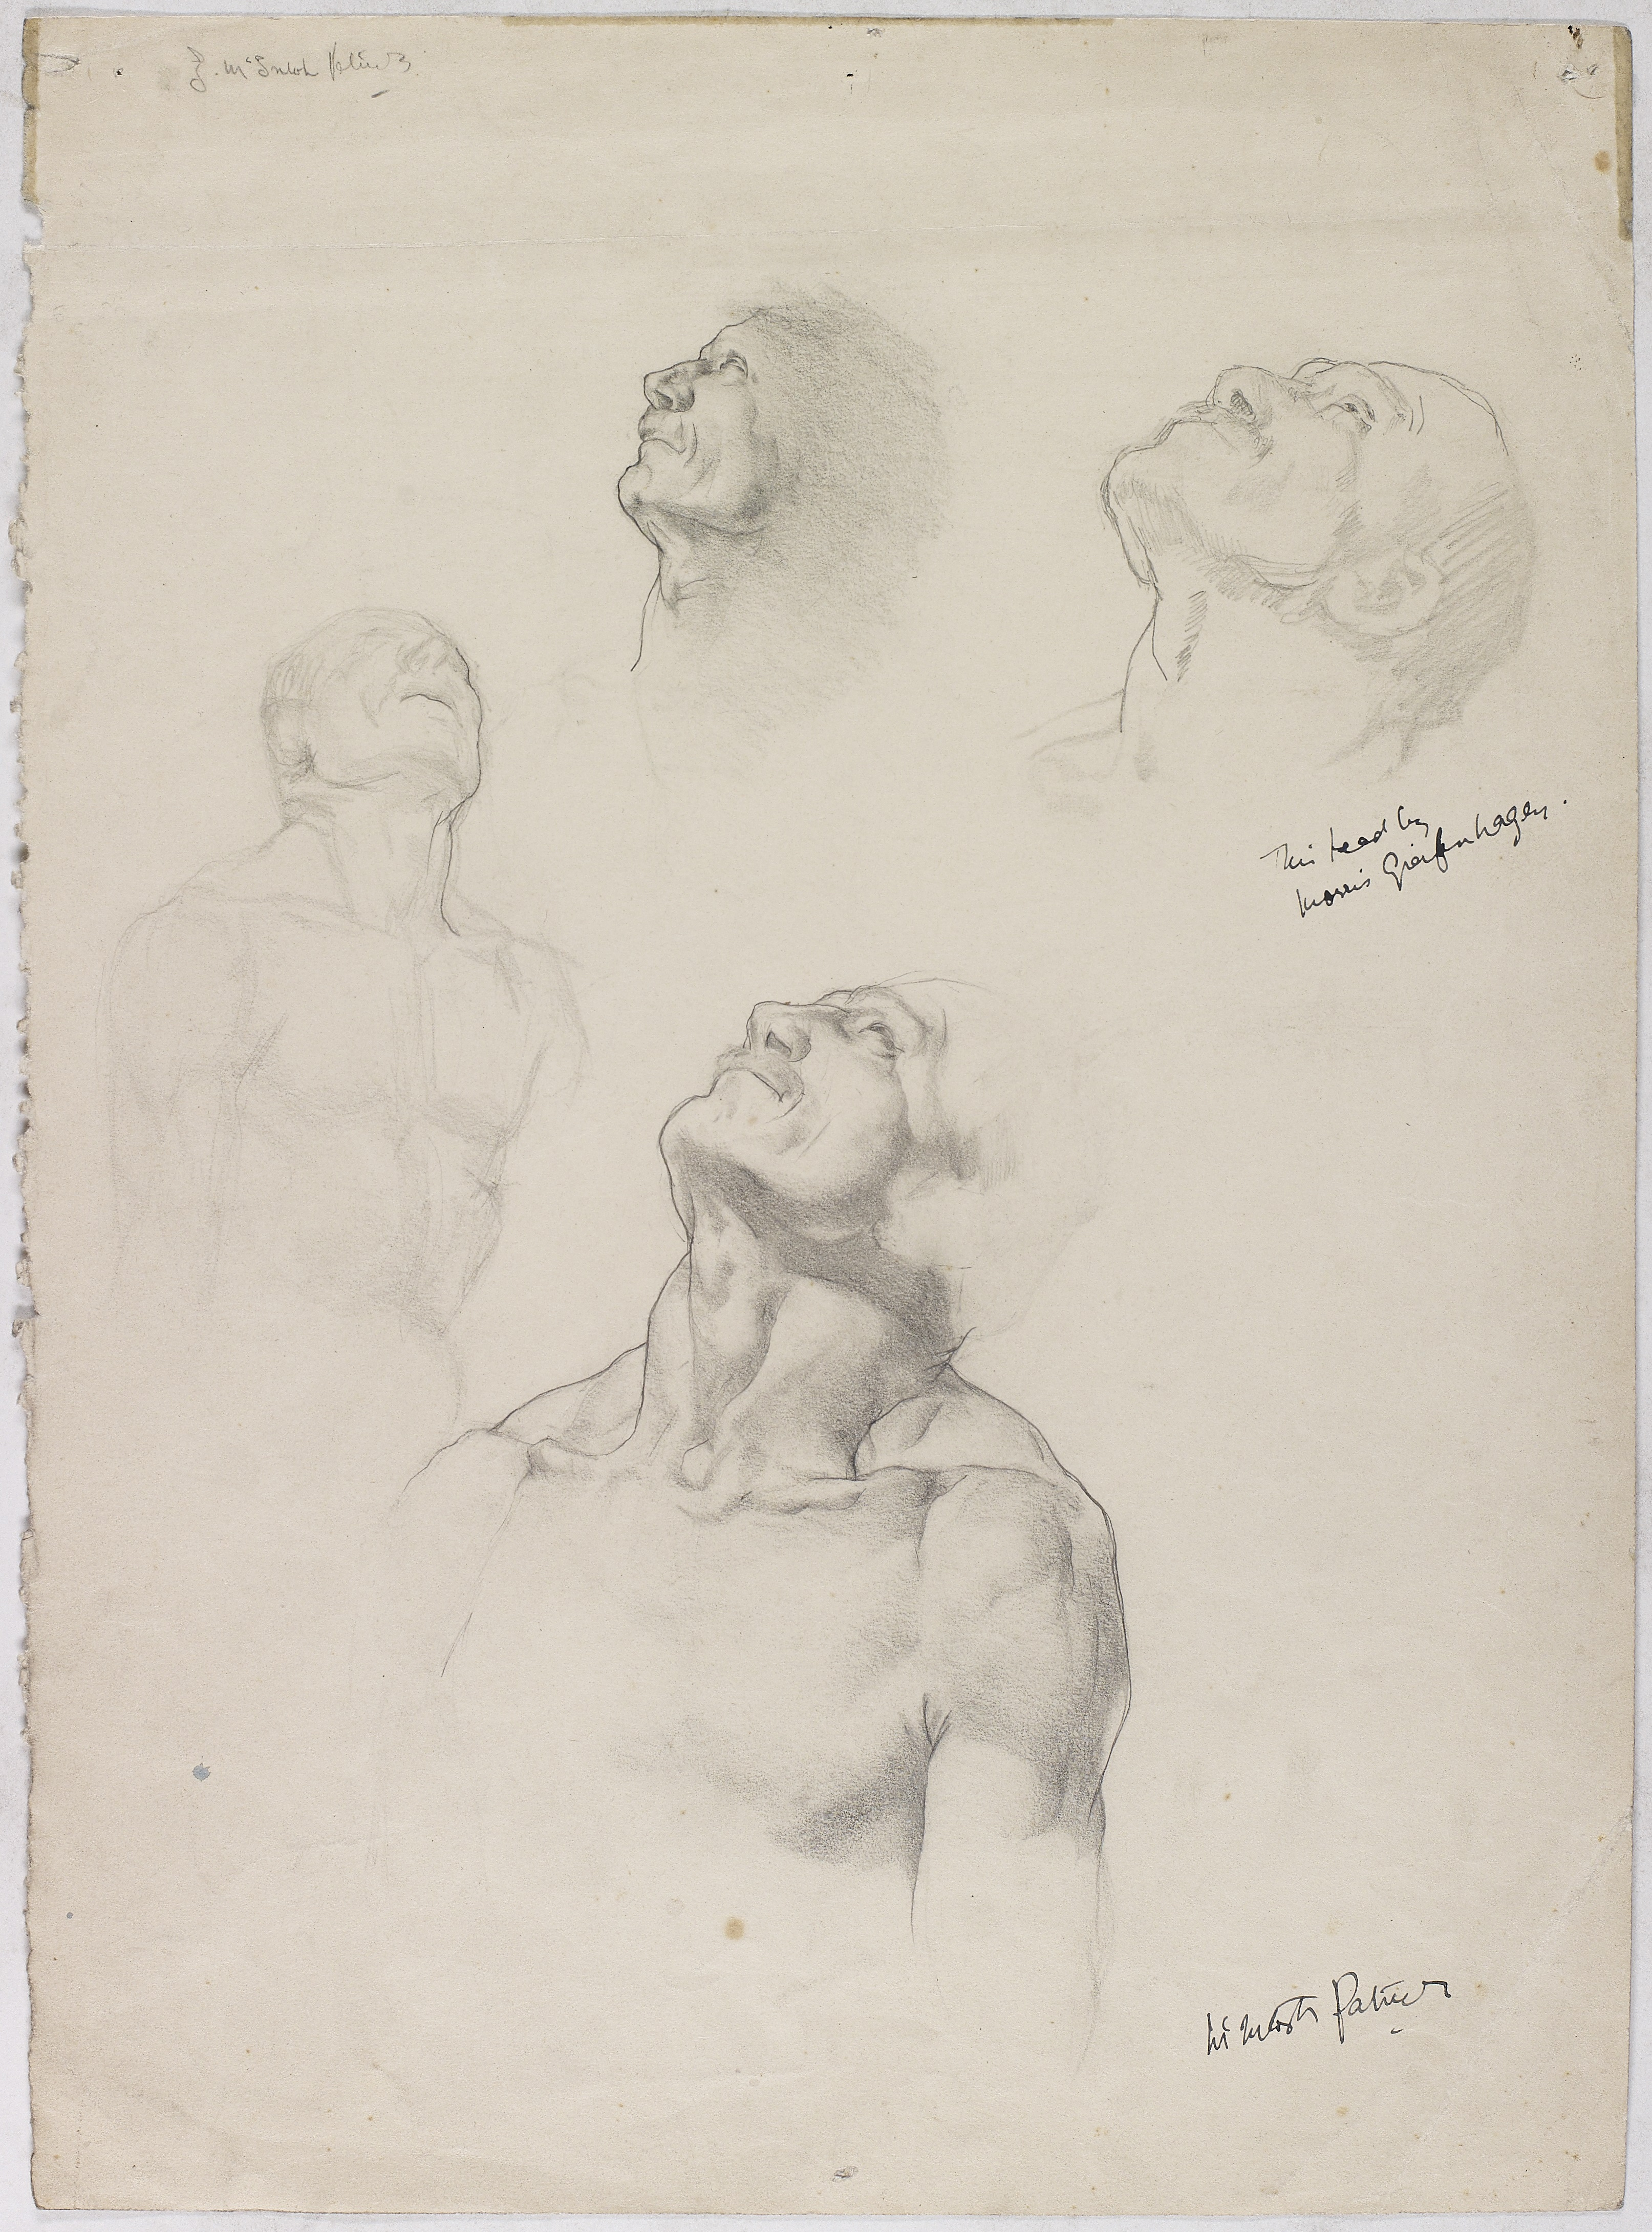 NMC 605, Male figure study by James McIntosh Patrick, featuring corrections by Maurice Greiffenhagen, c1927